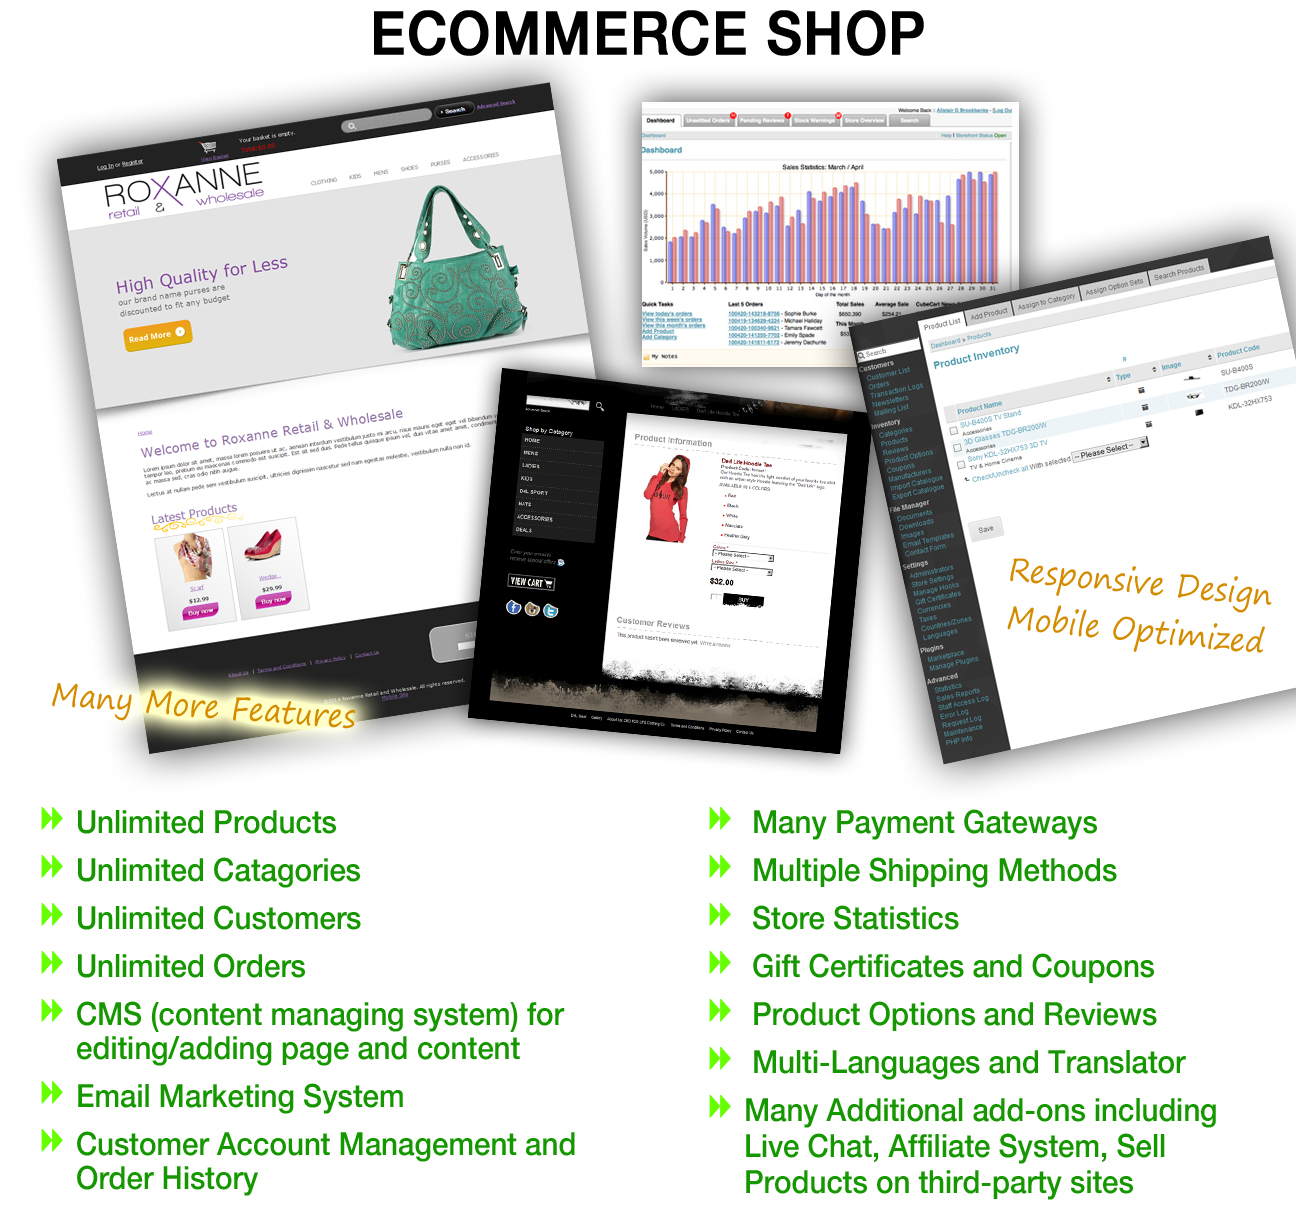 eCommerce Shopping Website